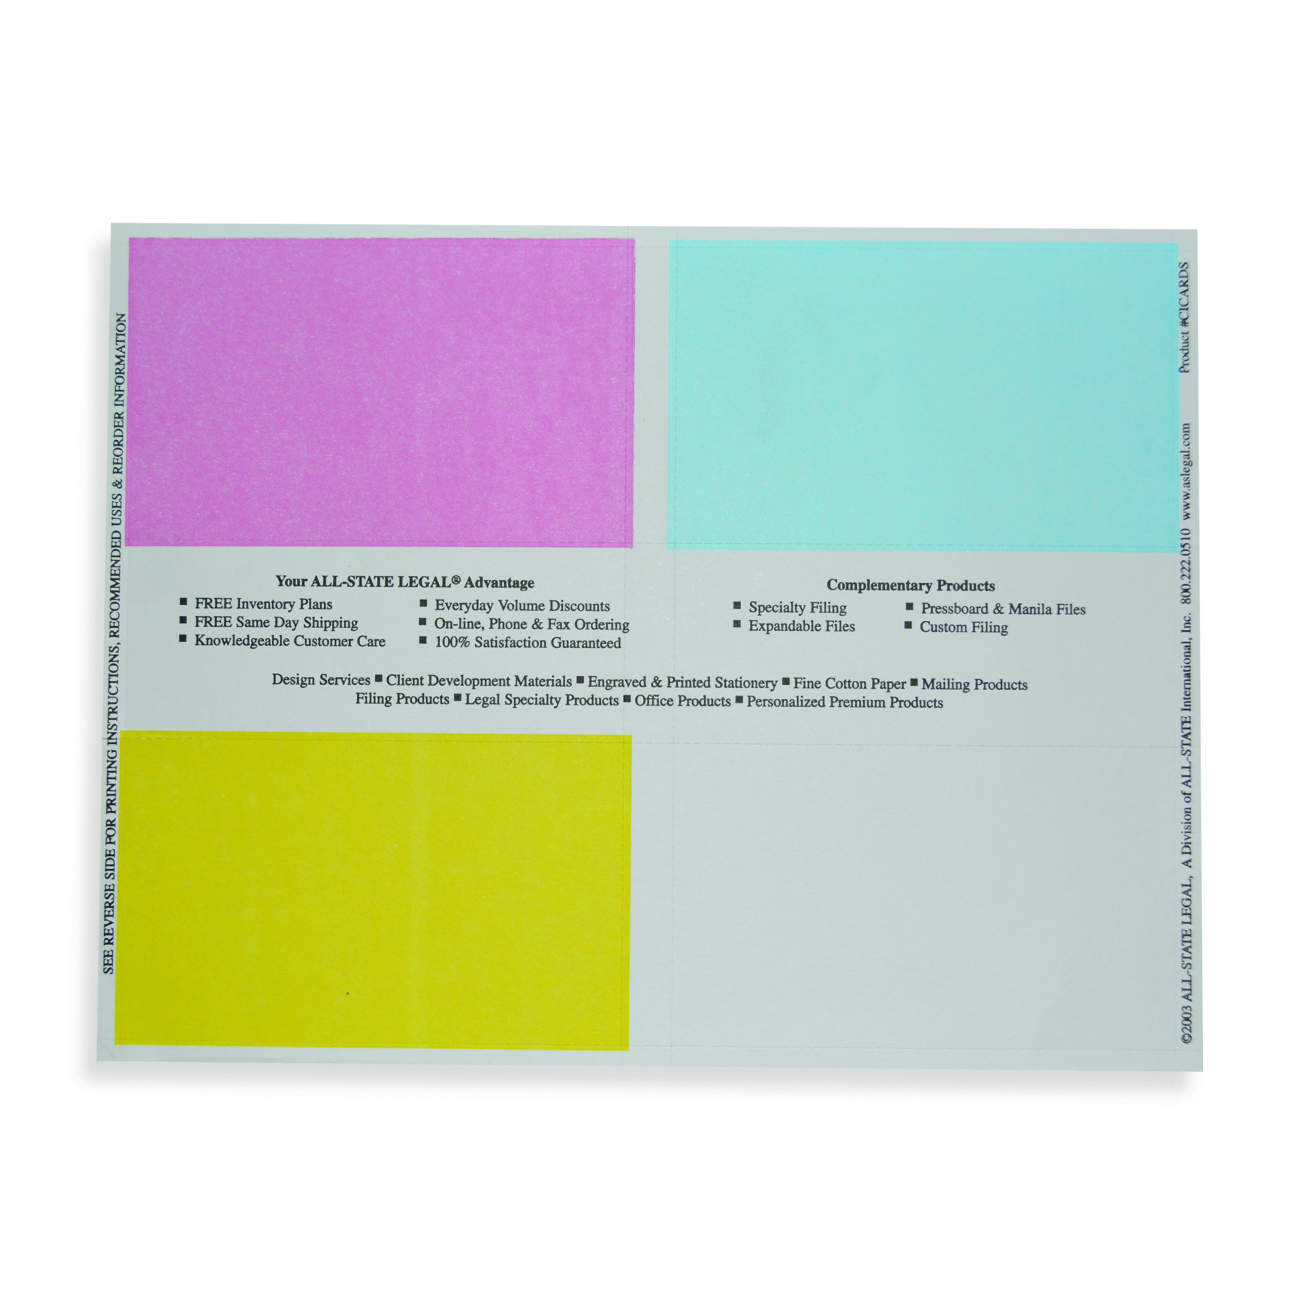 "Case Index Cards Case Index Cards - 4 3""x 5"" Perforated Cards (White, Yellow, Blue and Pink), 100 Sheets/PK"